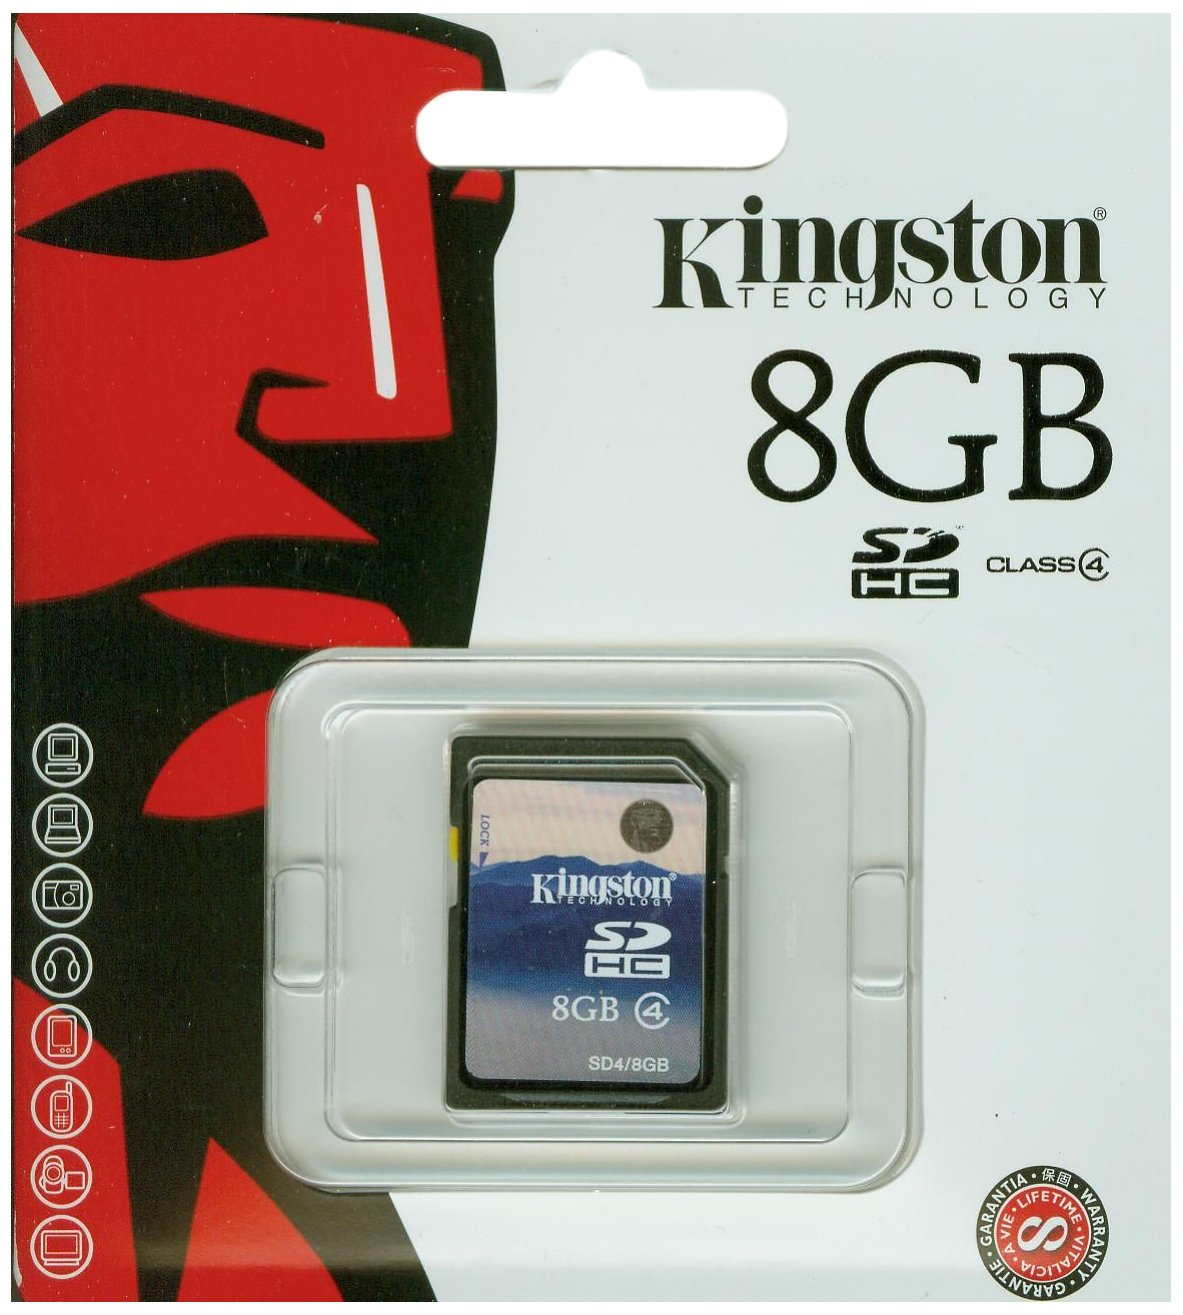 Kingston 8 GB Class 4 SDHC Flash Memory Card SD4/8GB